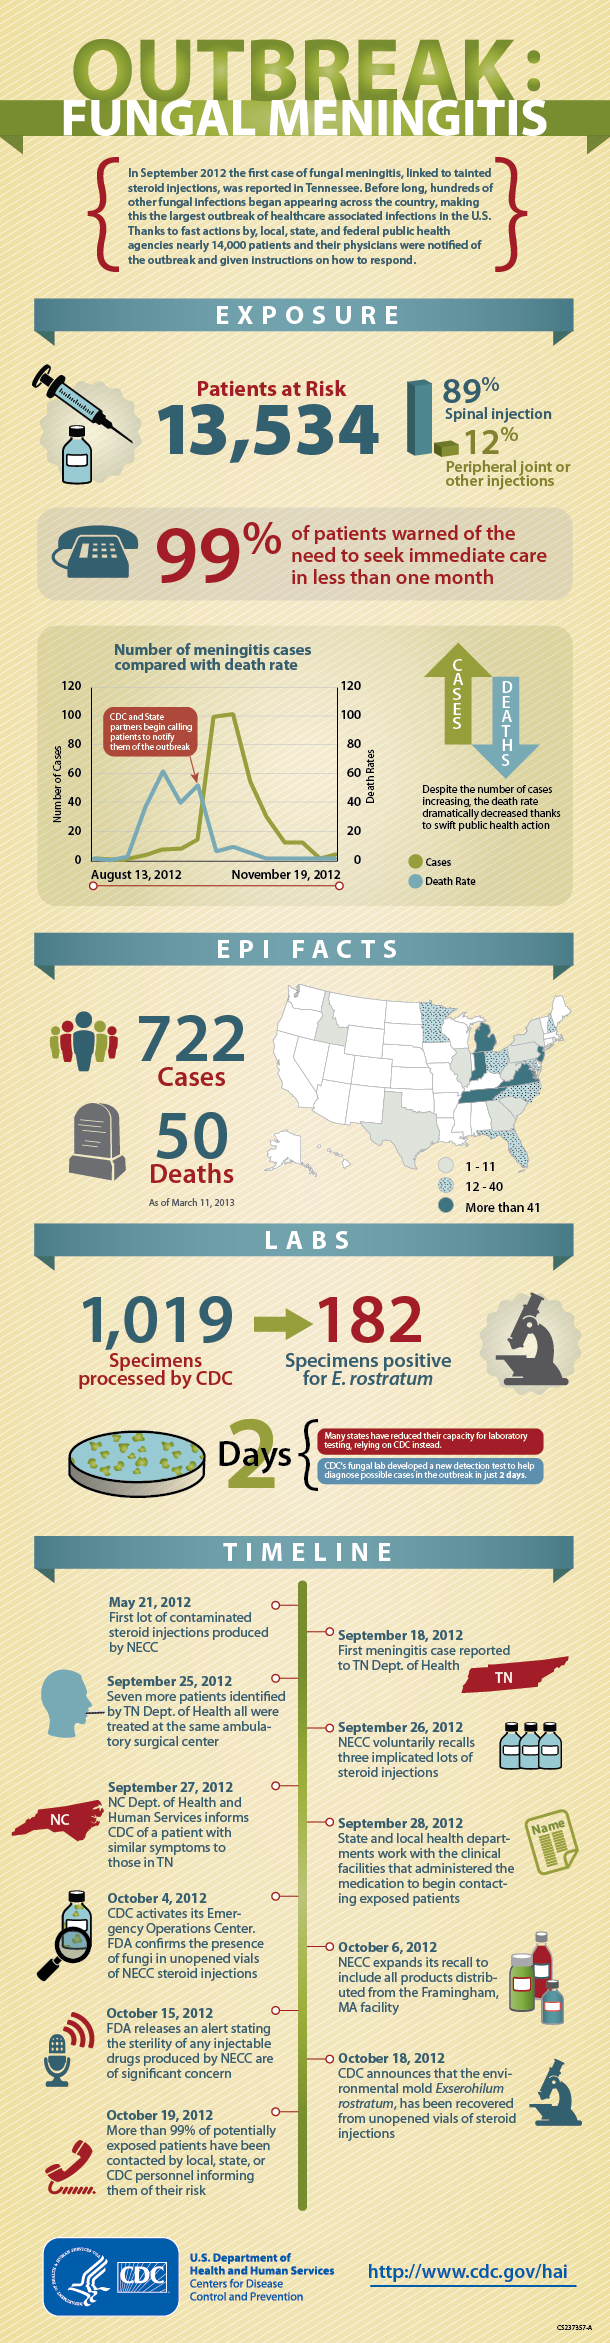 Fungal meningitis outbreak infographic. Full text description available at: http://www.cdc.gov/hai/outbreaks/infographic-read-access.html